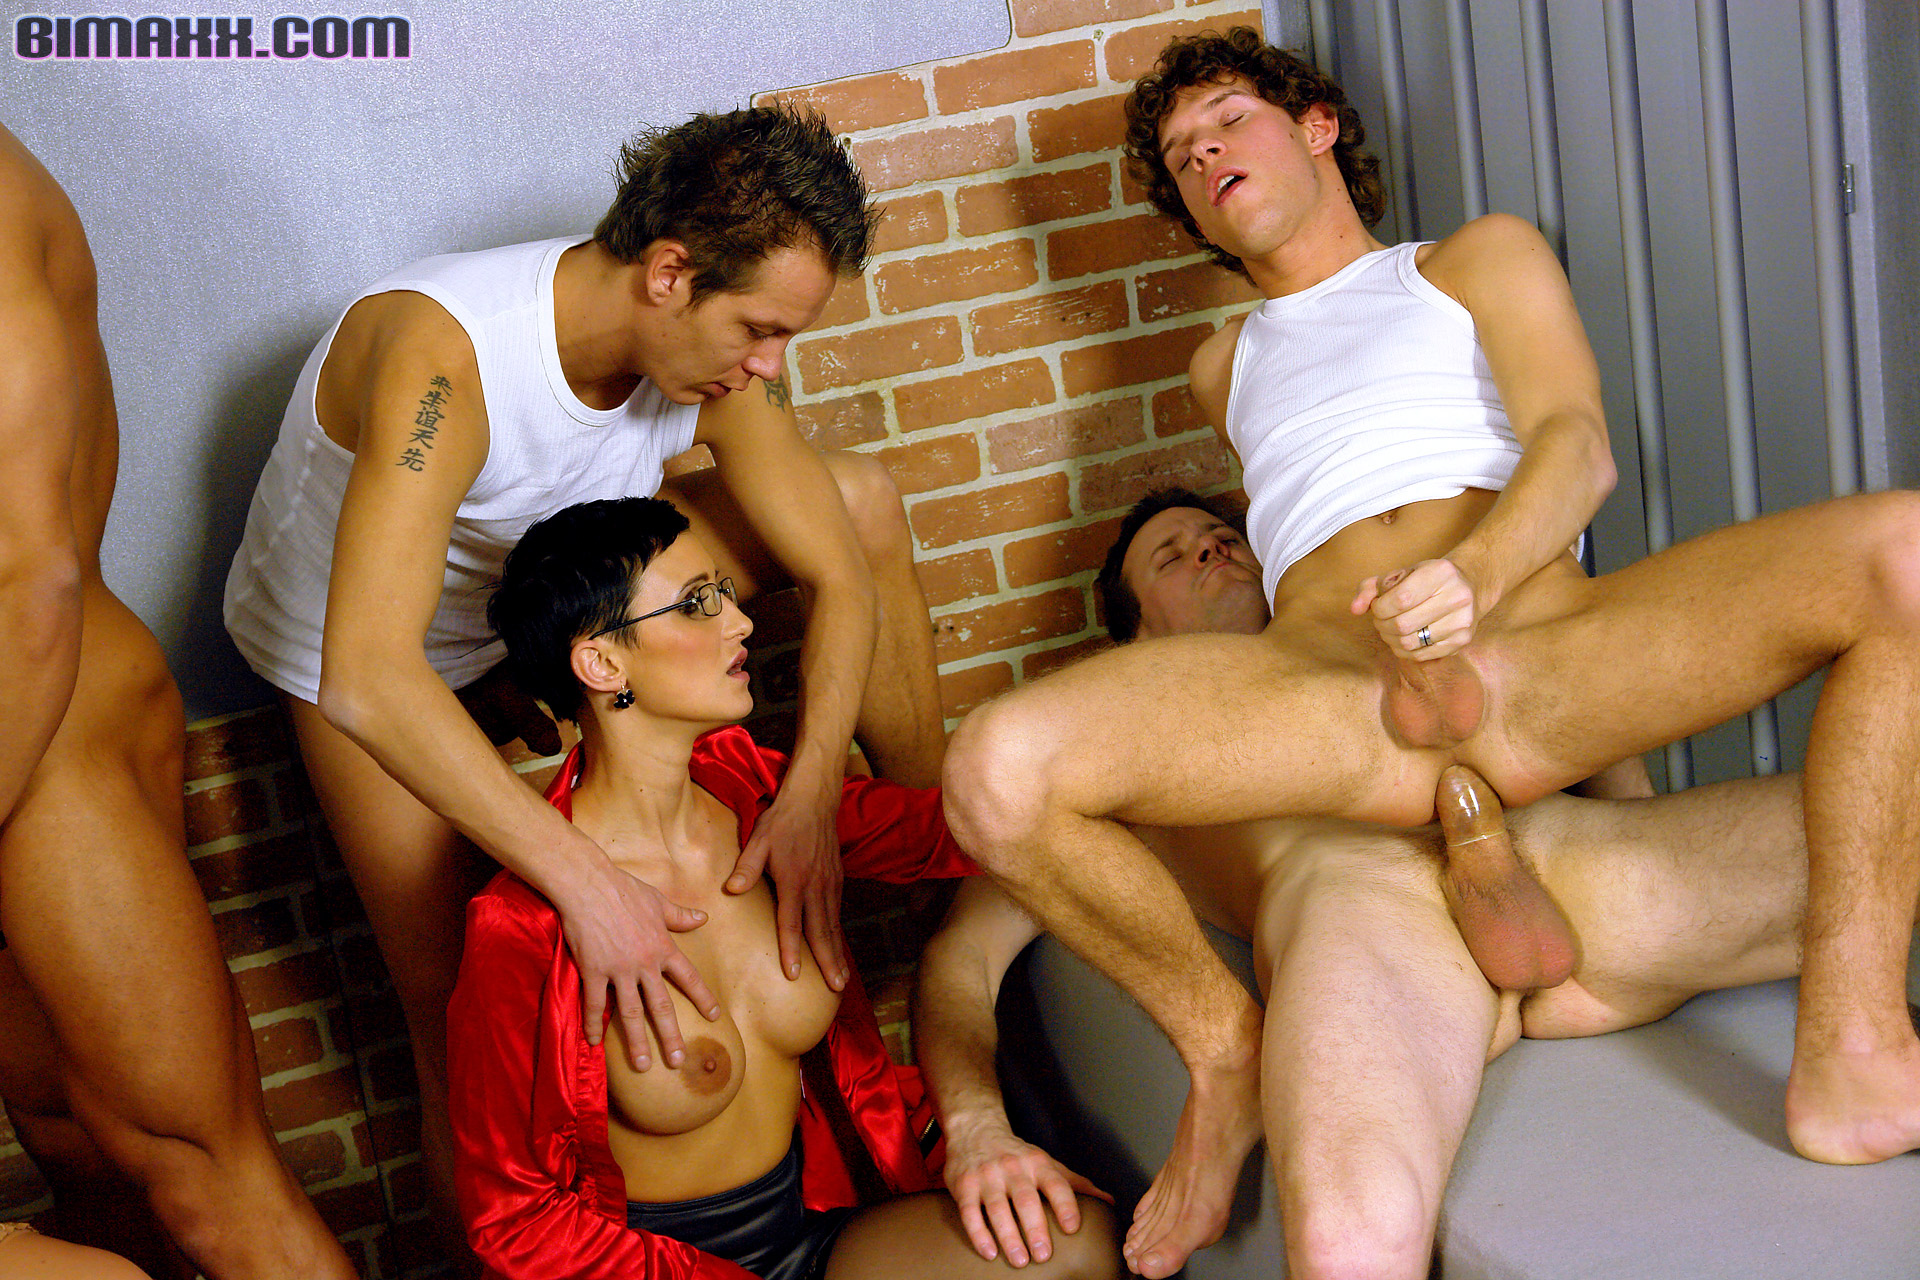 Free bisexual male group sex stories